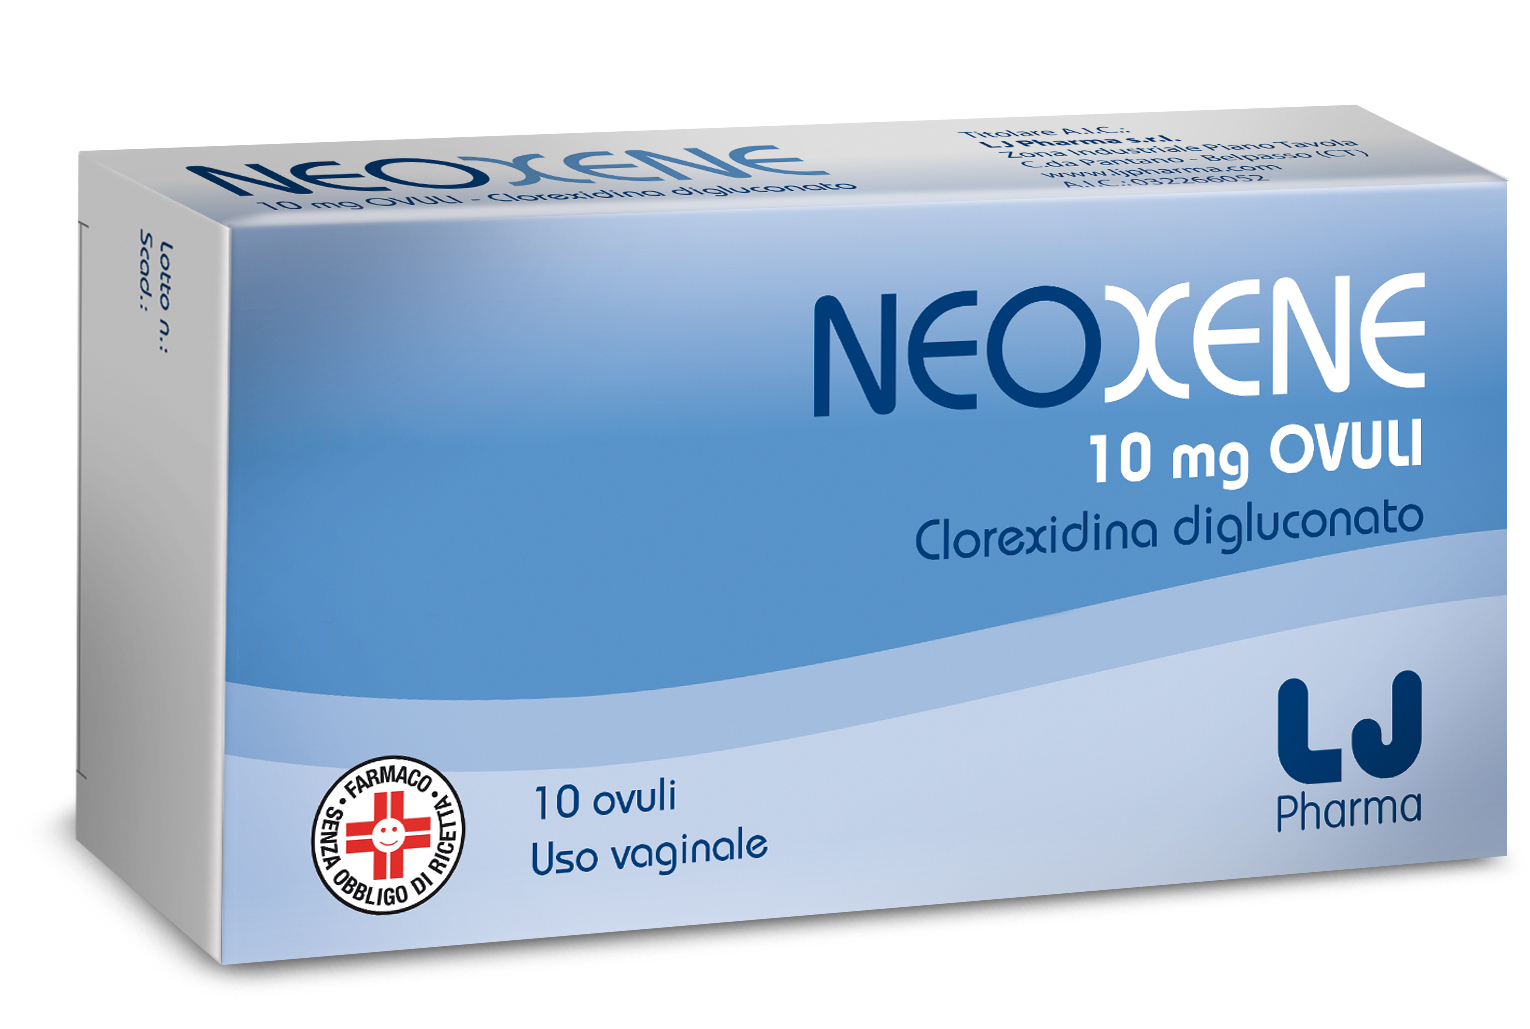 NEOXENE*10 OV VAG 10MG - Farmajoy